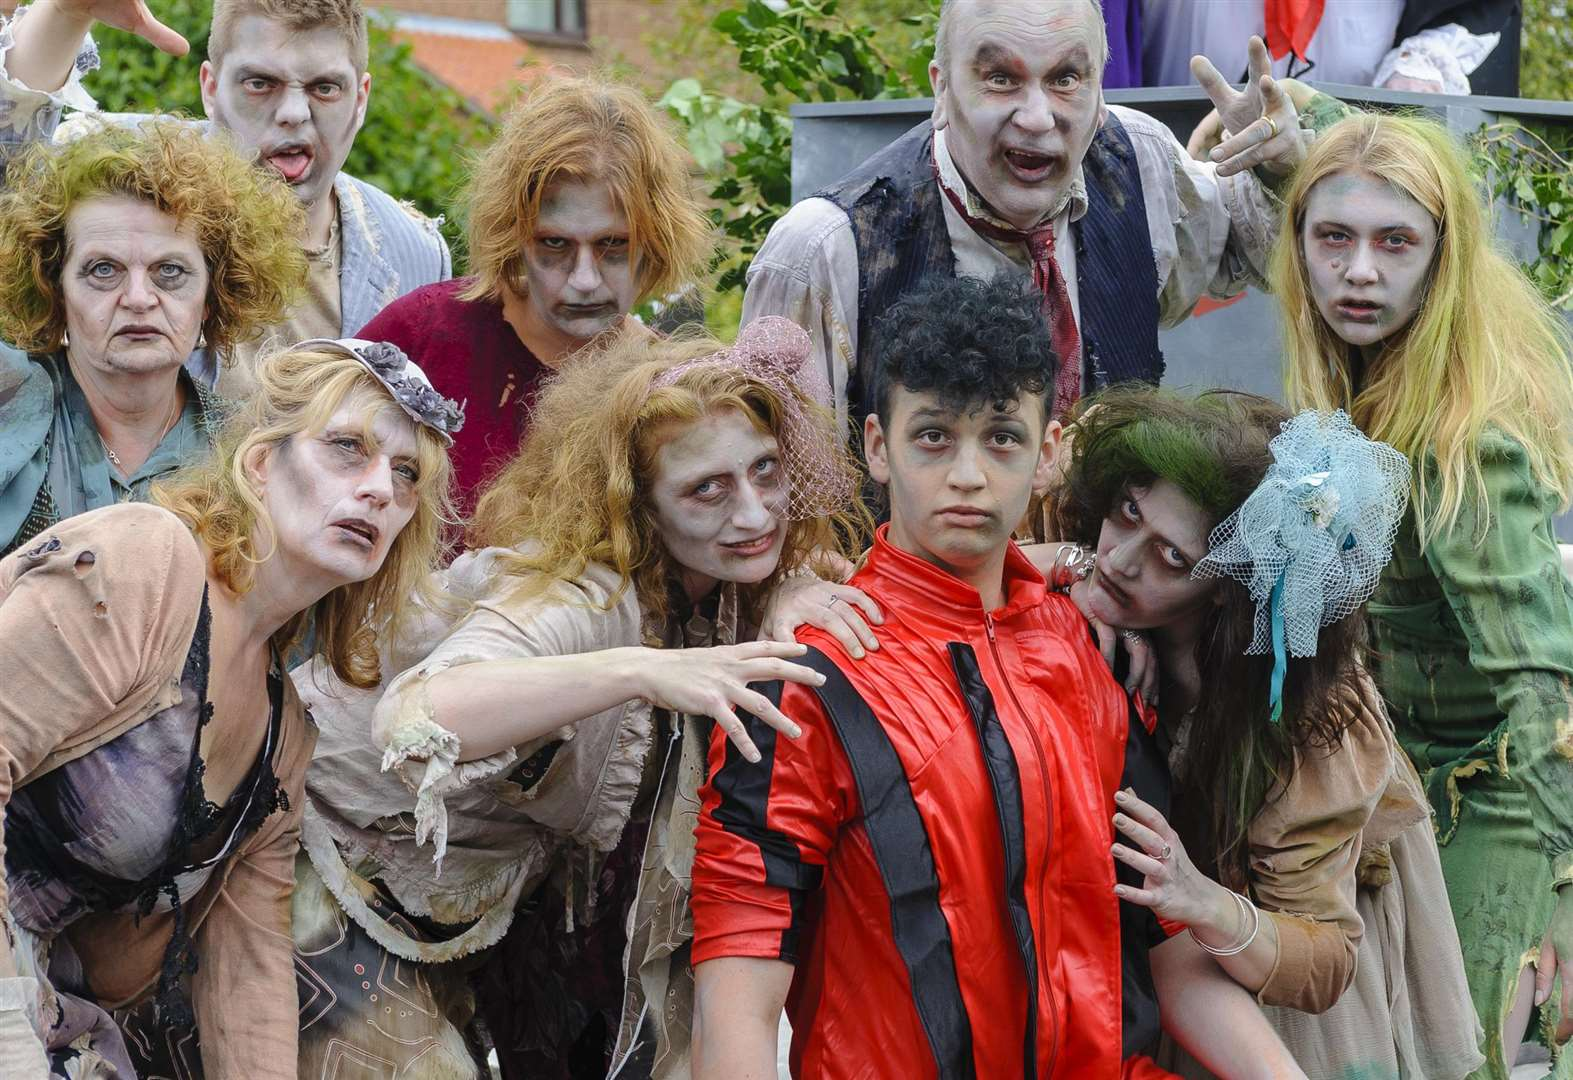 Colourful creations and ghoulish characters on show at the Pulham Market Carnival